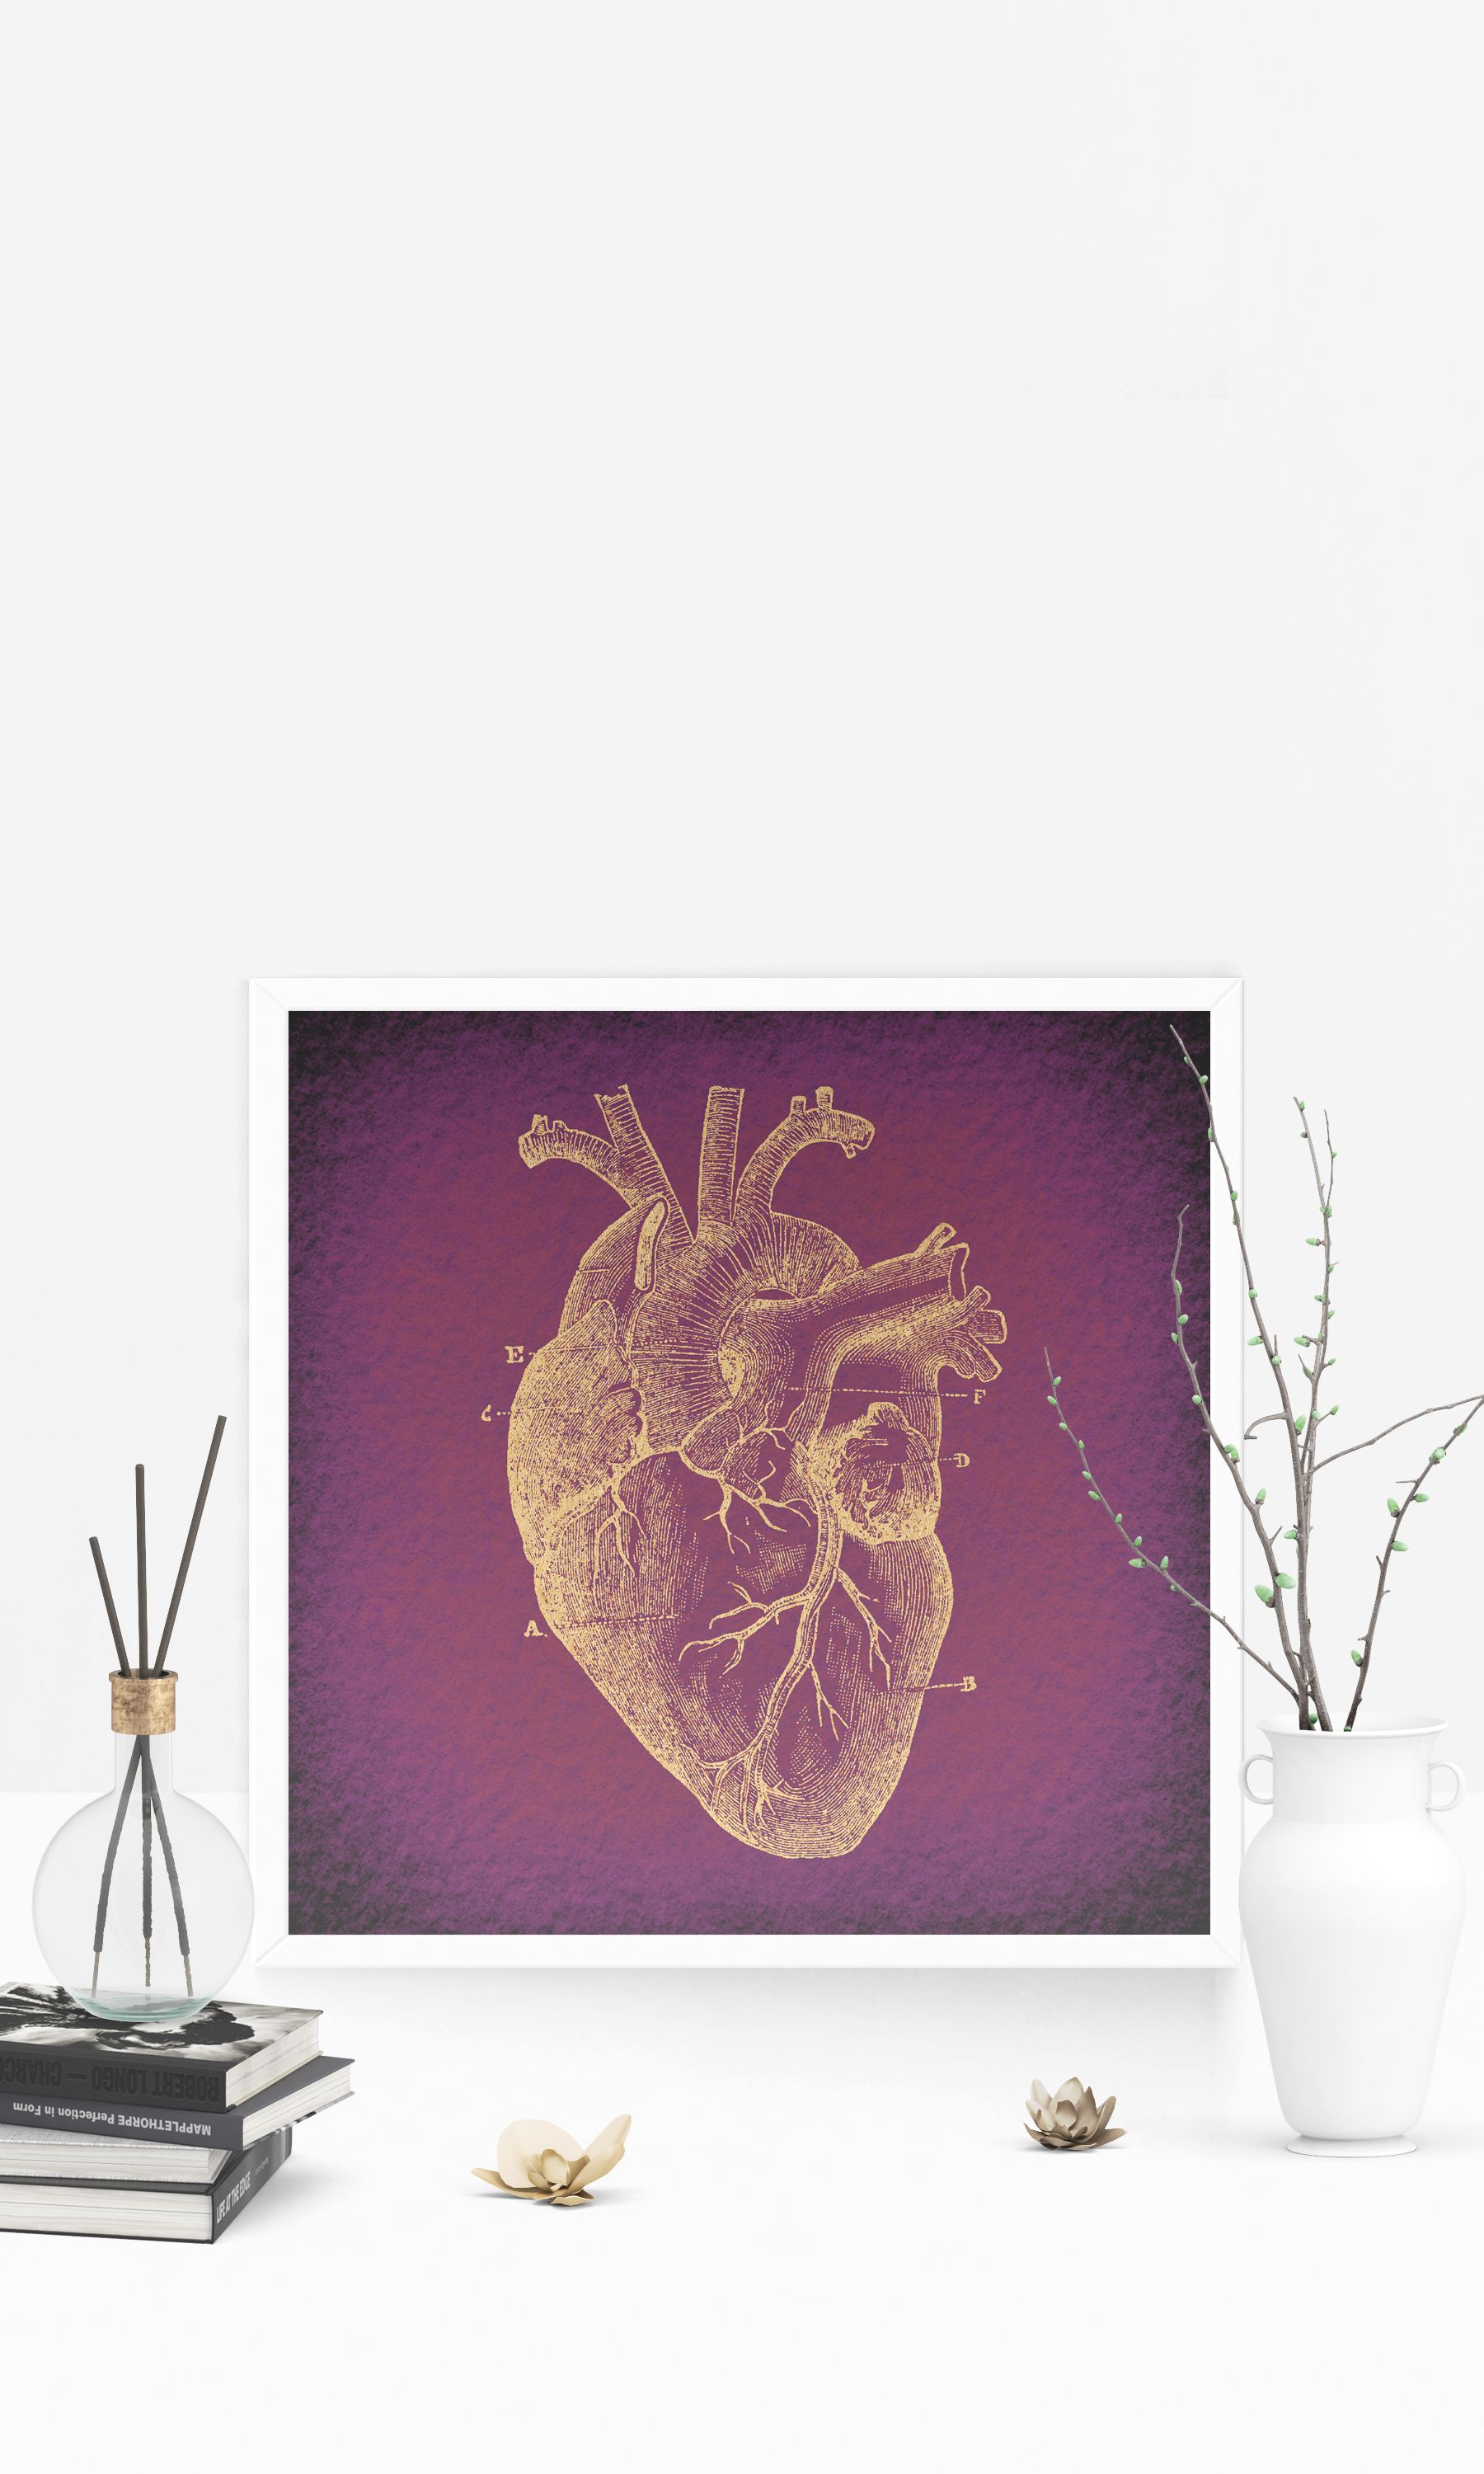 Clic Heart Diagram Wall Art Medical Anatomy Themed Home Decoration Antique Print Or Poster With A Vintage Purple Paper Style Office Bedroom